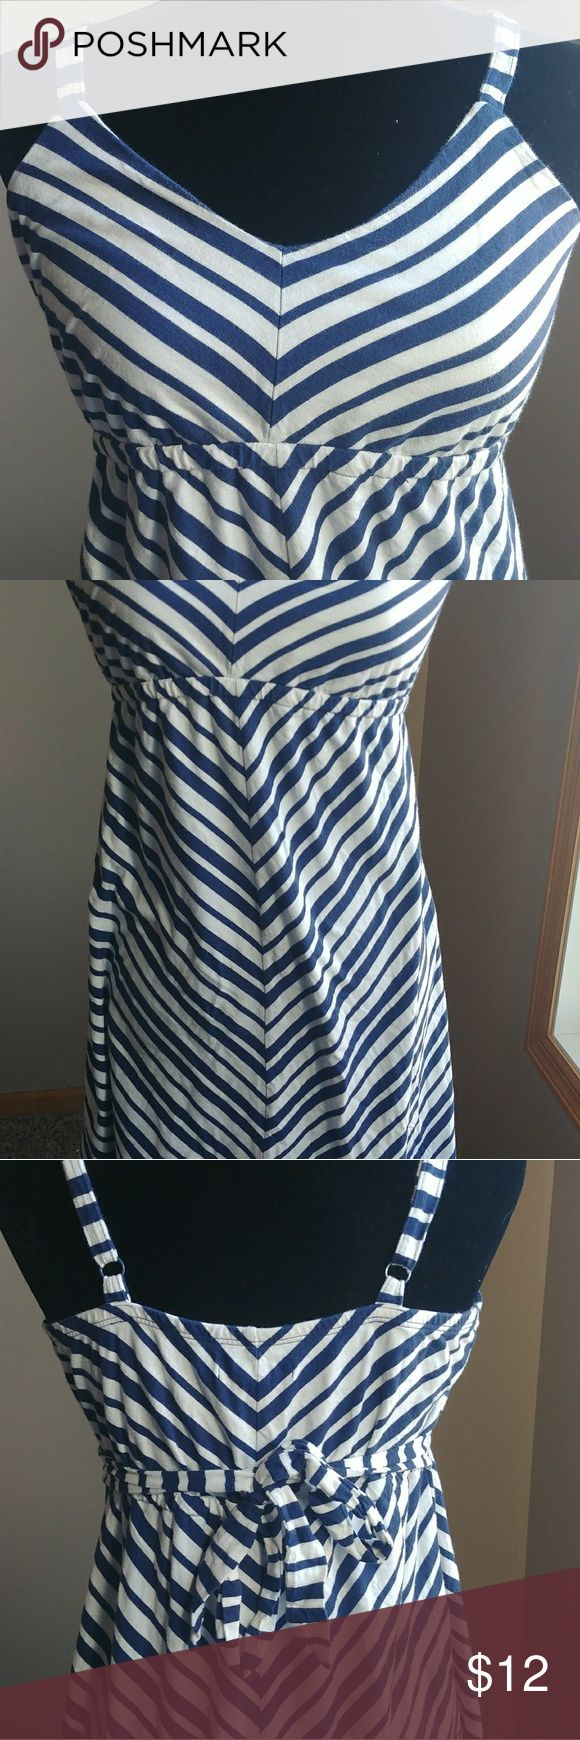 Old Navy Maternity Dress White with blue stripes Old Navy Maternity dress. Size small Stretchy material. Nice and flowy, comfy dress. Old Navy Other